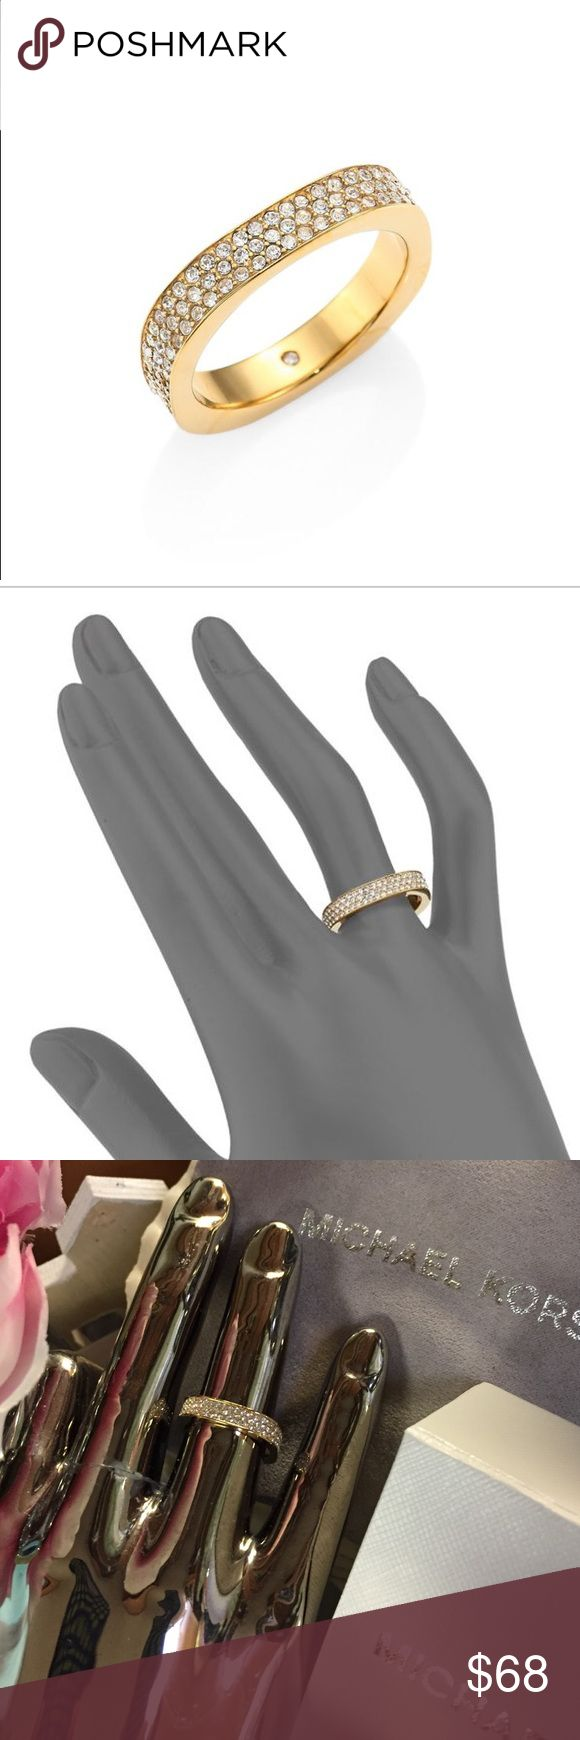 Michael Kors Pave Ring Brilliant genuine MK flat edge ring with glittery pave rhinestones.  In gold tone on stainless steel.  Very pretty and looks expensive.  ❌Trades. [RN] Price firm. First 2 photos stock. Comes with box and dust bag. Michael Kors Jewelry Rings